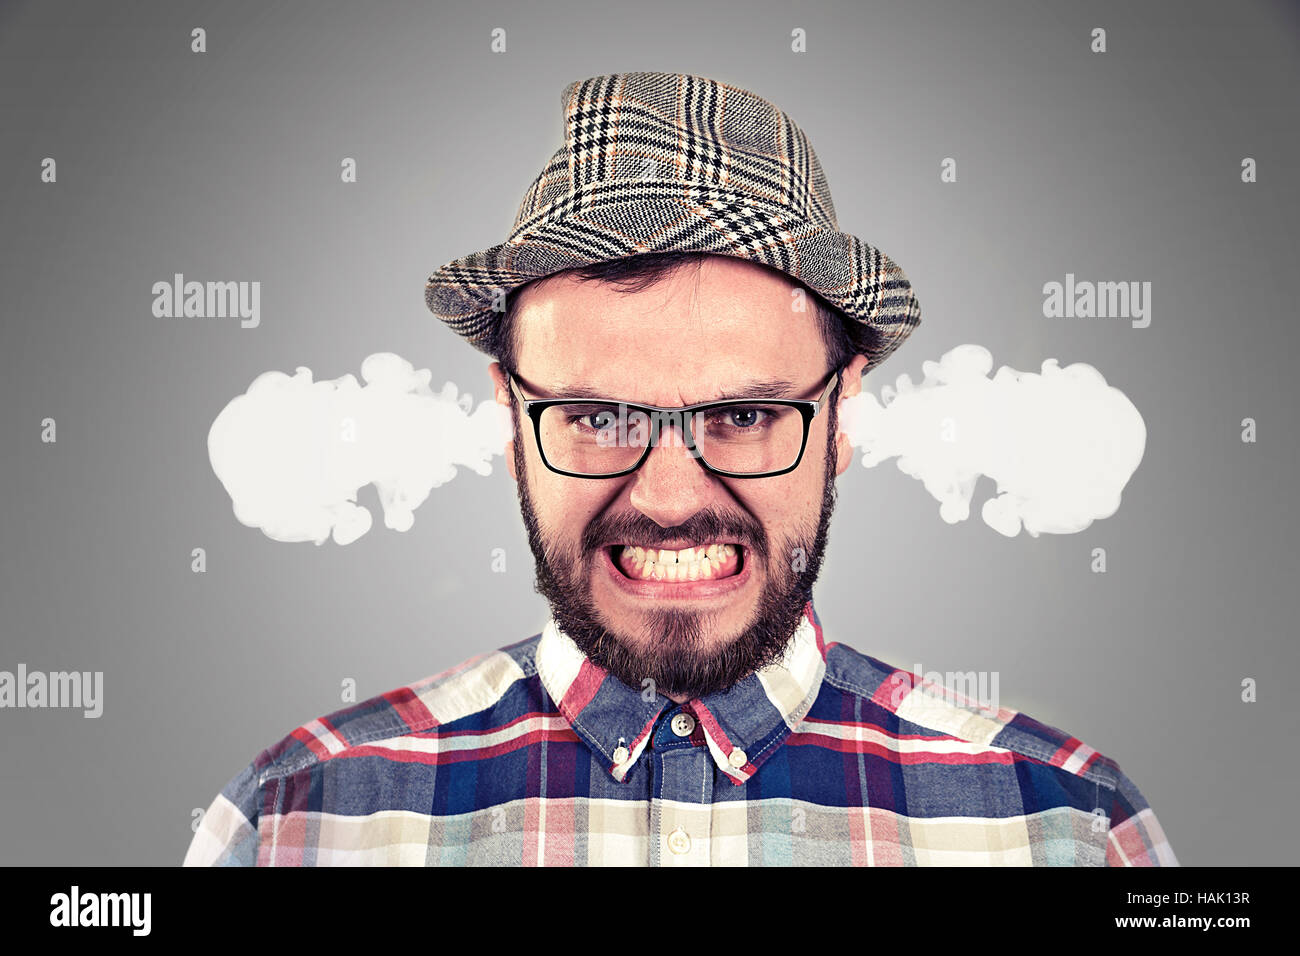 angry young man blowing steam coming out of ears - Stock Image